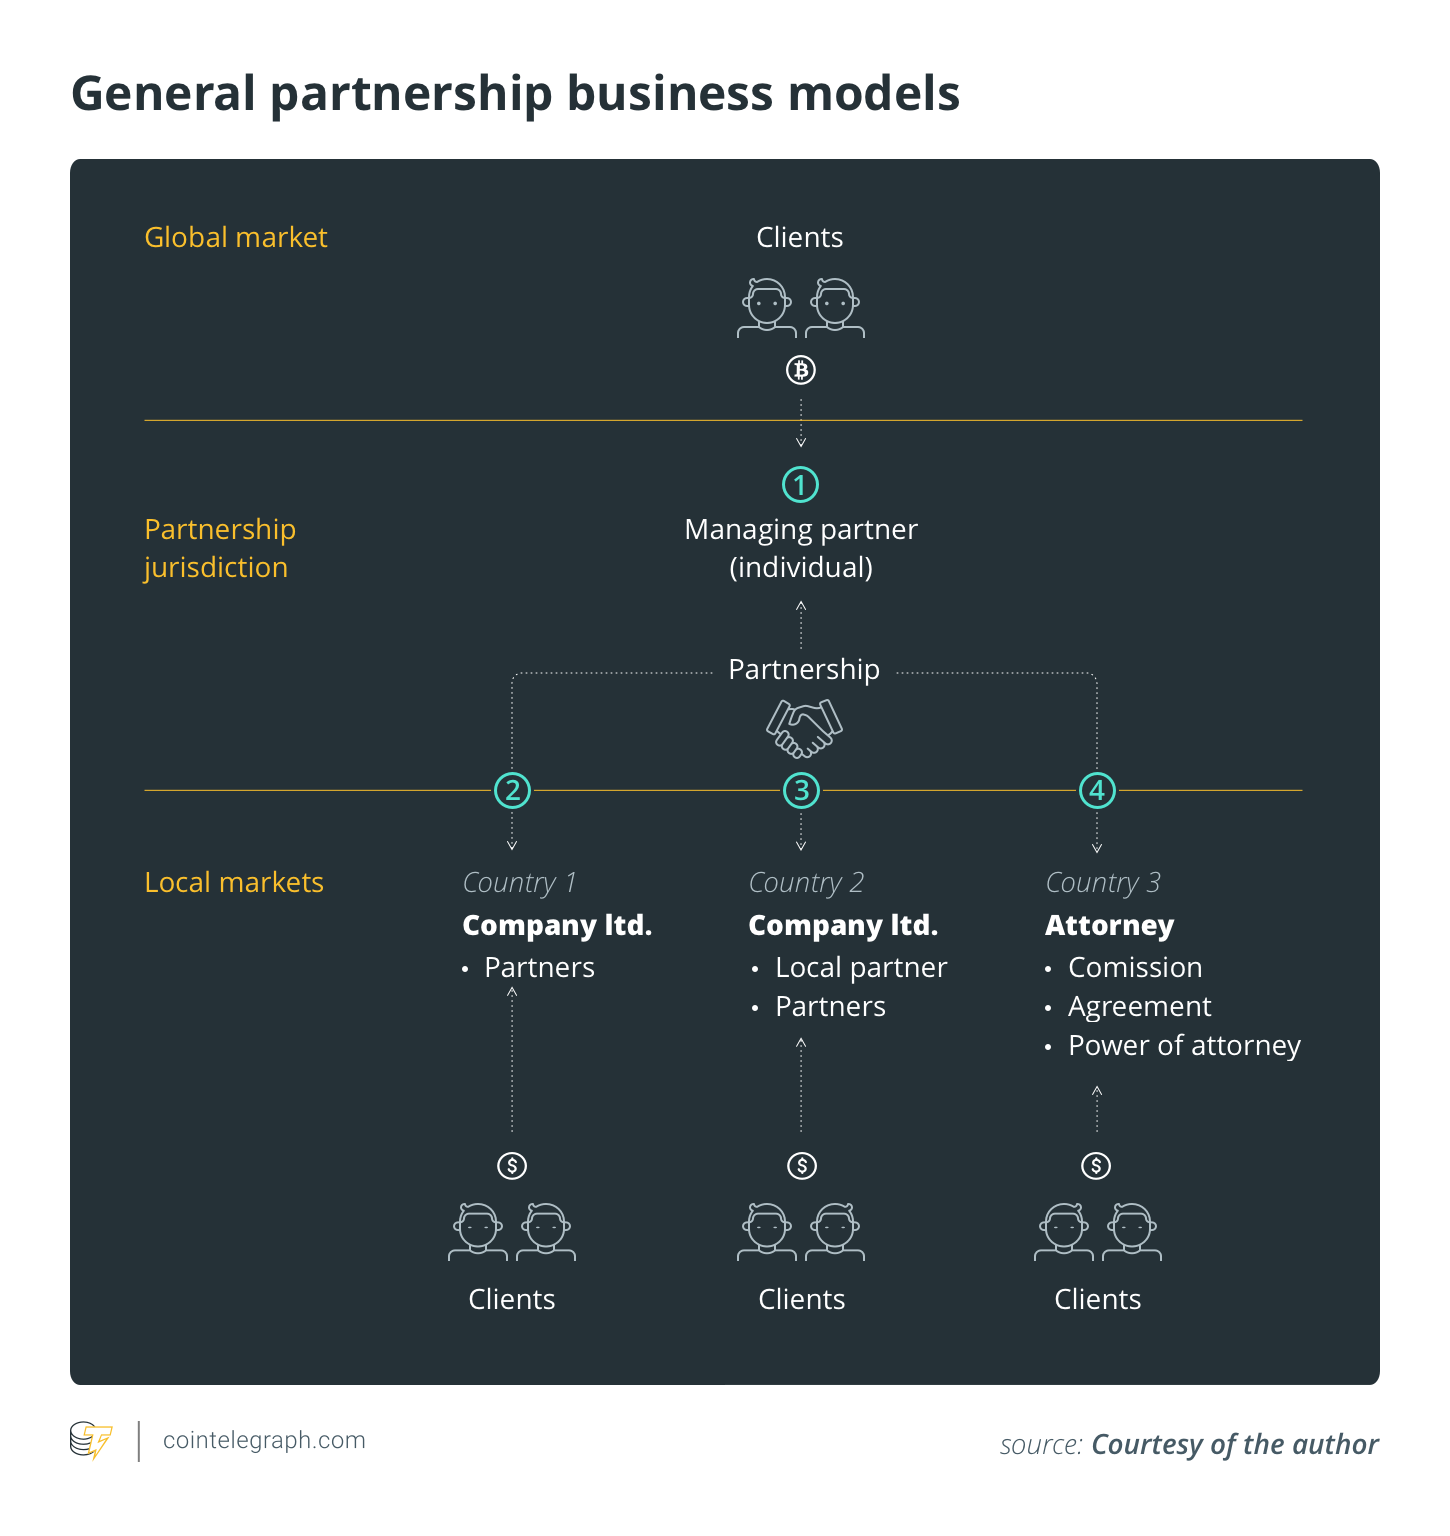 General partnership business models